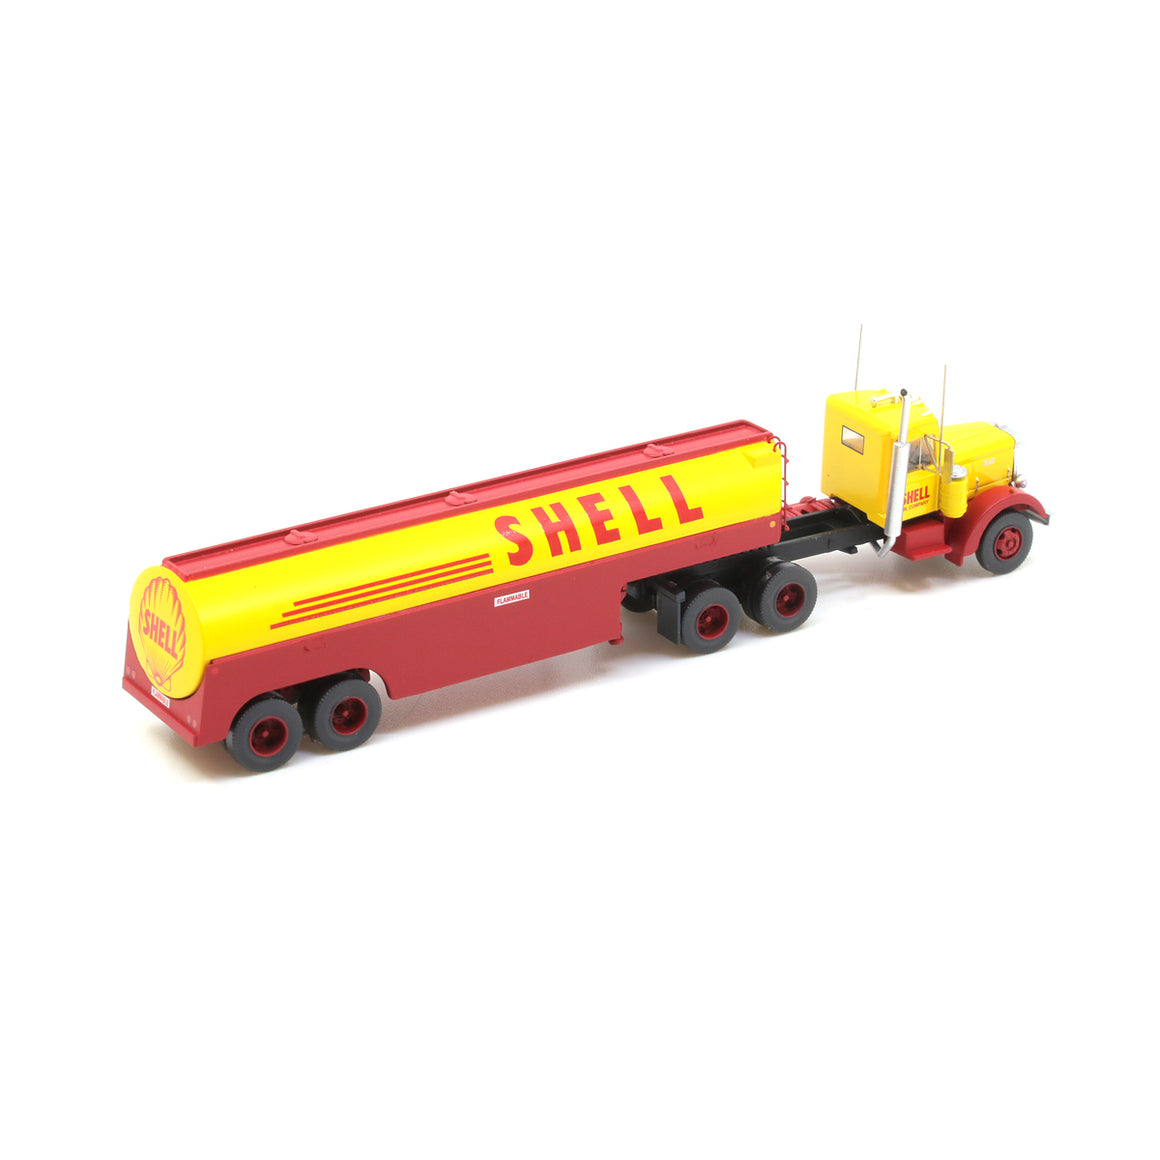 N Scale: Peterbilt 350 with Fuel Tank Trailer - Shell